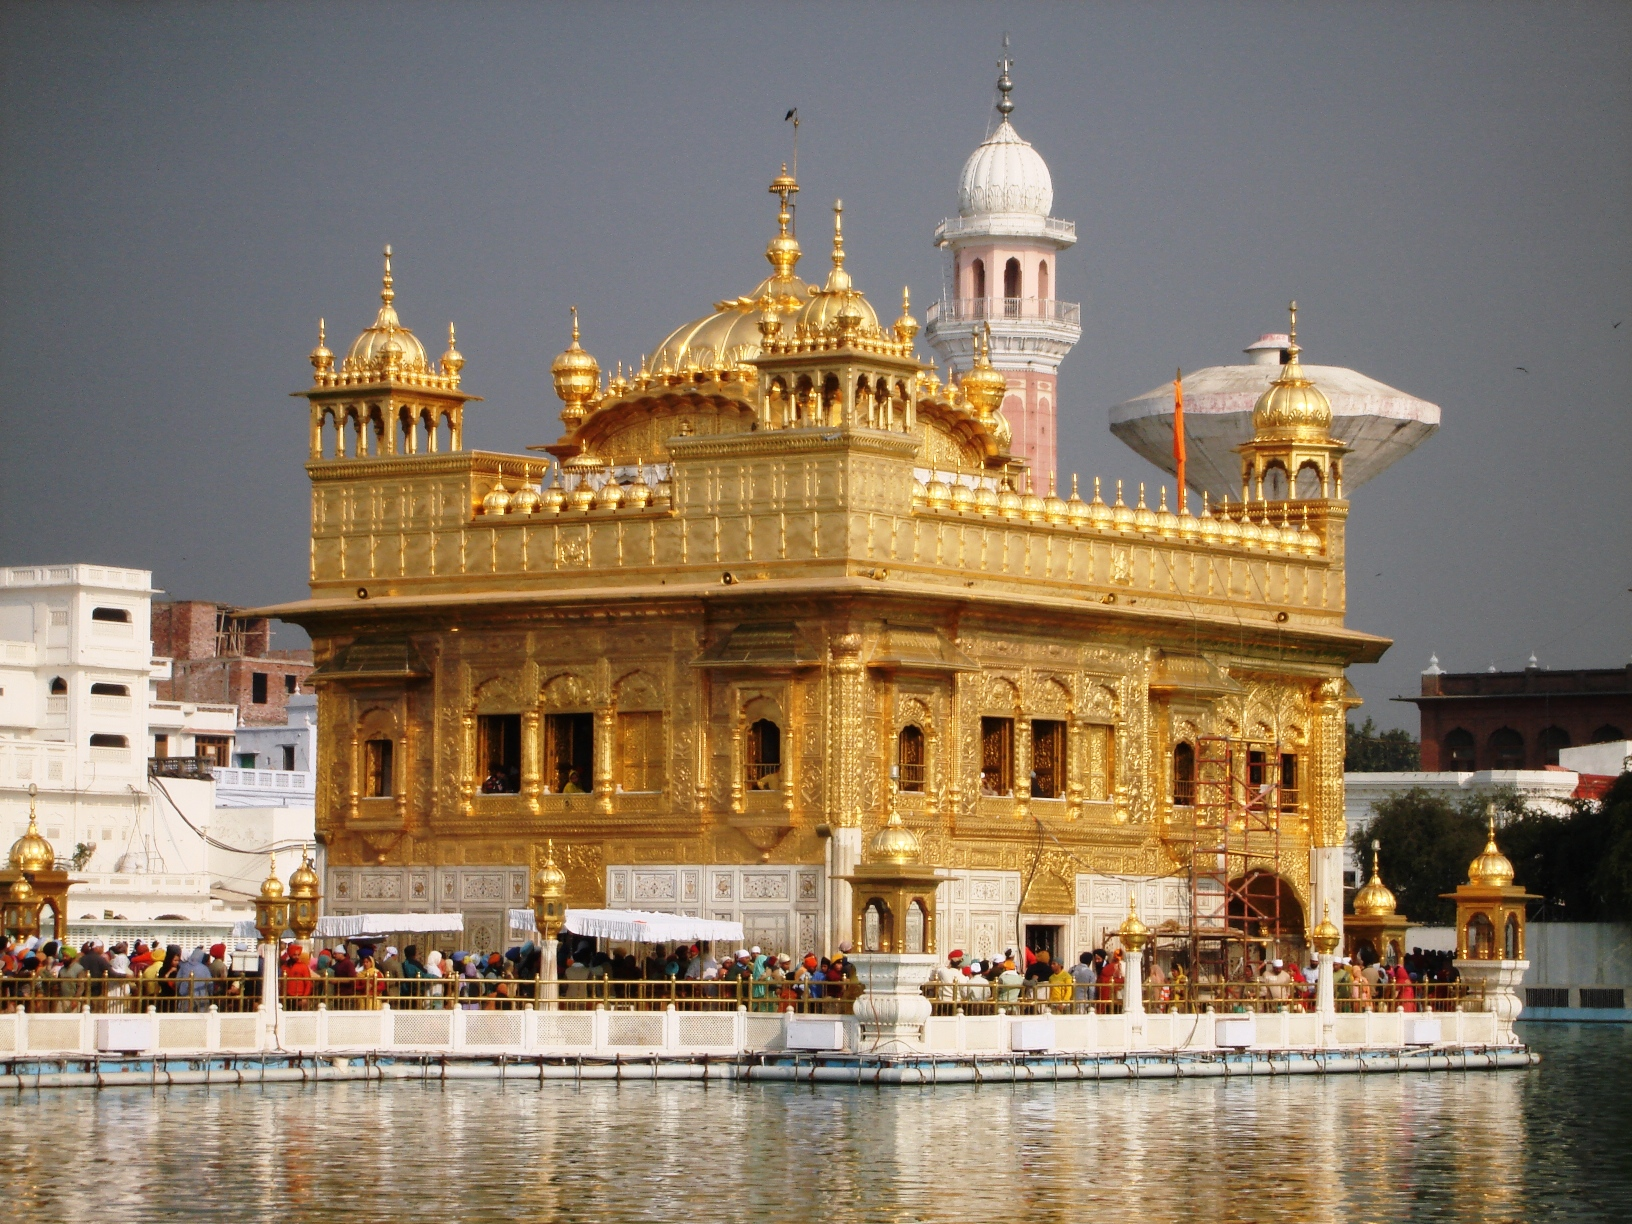 http://upload.wikimedia.org/wikipedia/commons/8/89/Sri_Harmandir_Sahib.JPG